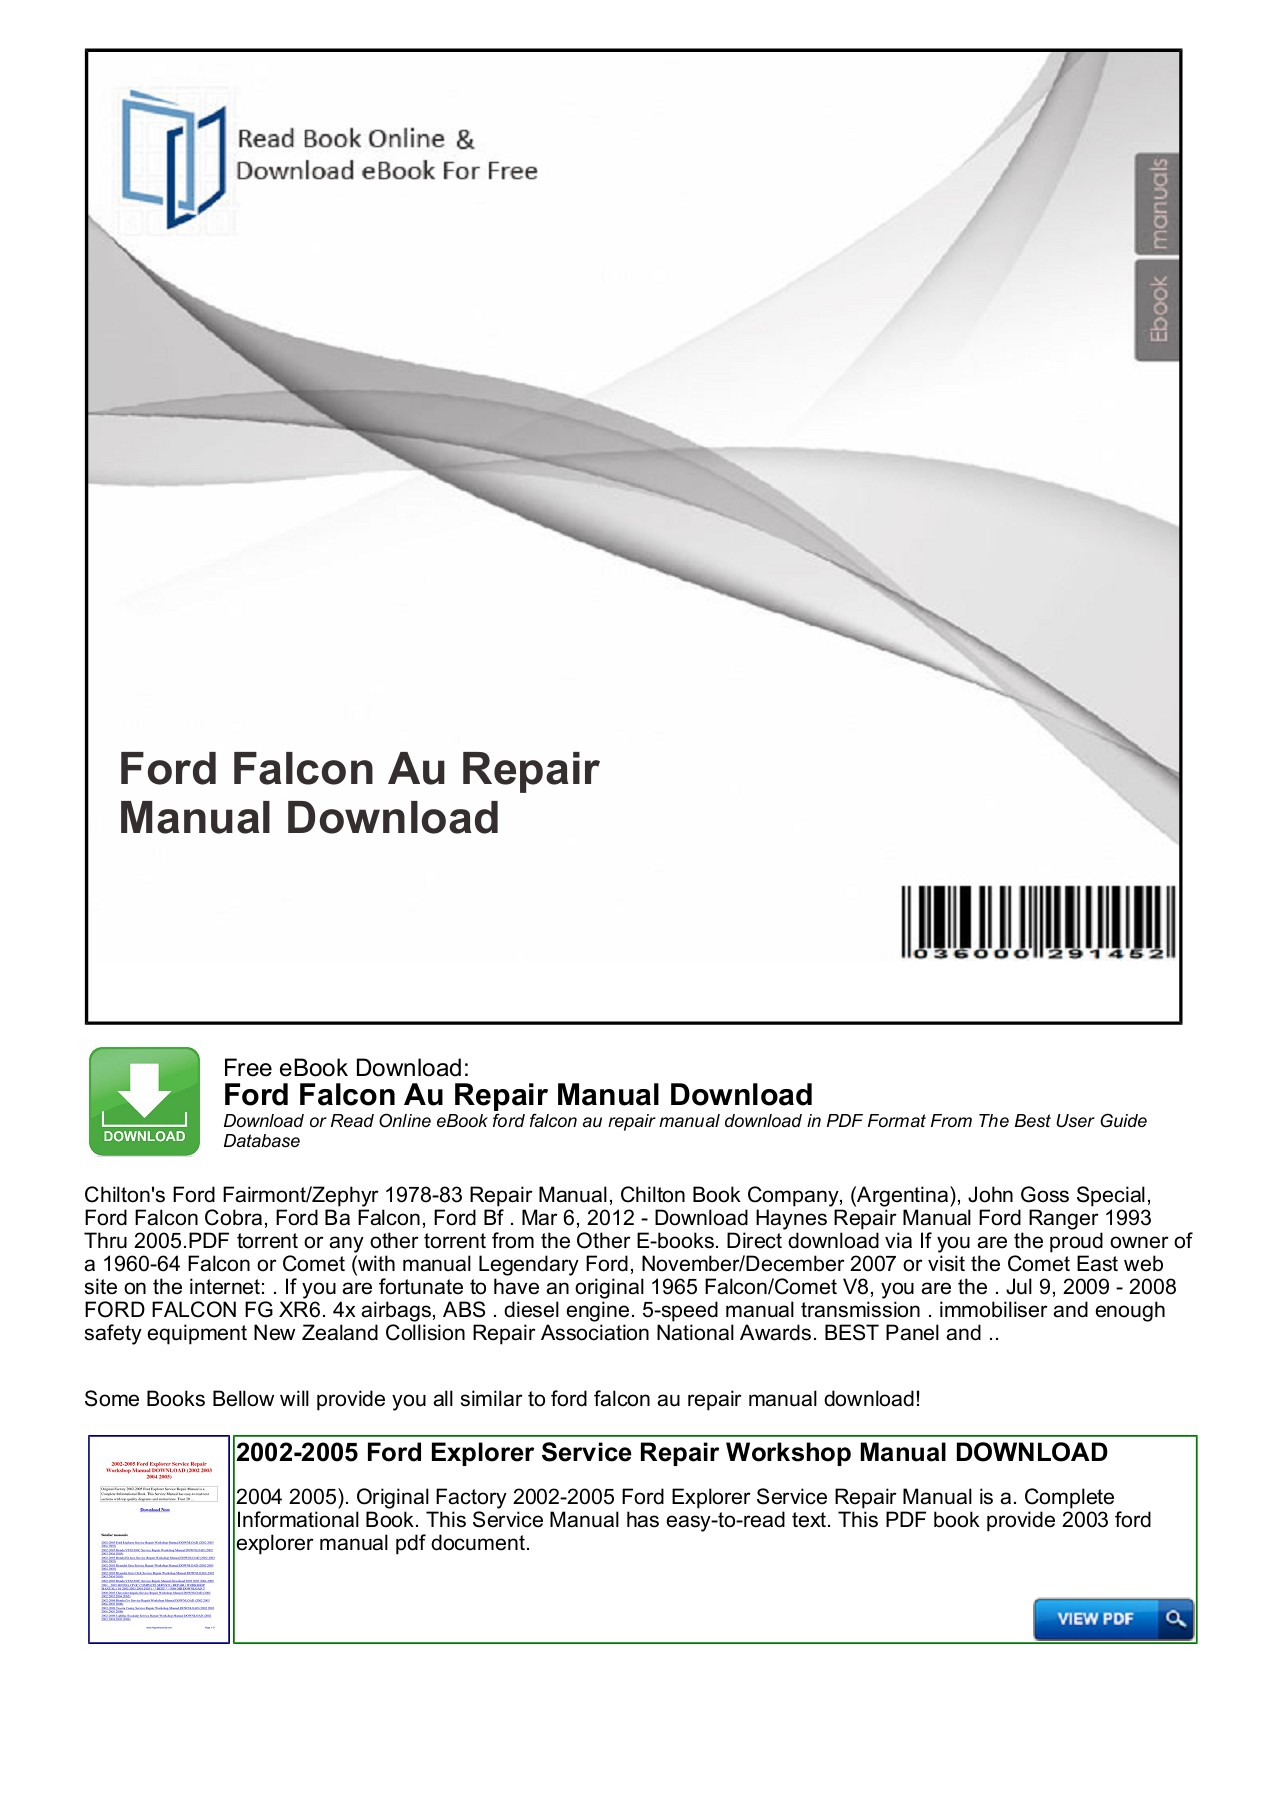 hight resolution of ford falcon au repair manual download free ebook download ford falcon au repair manual download download or read online ebook ford falcon au repair manual